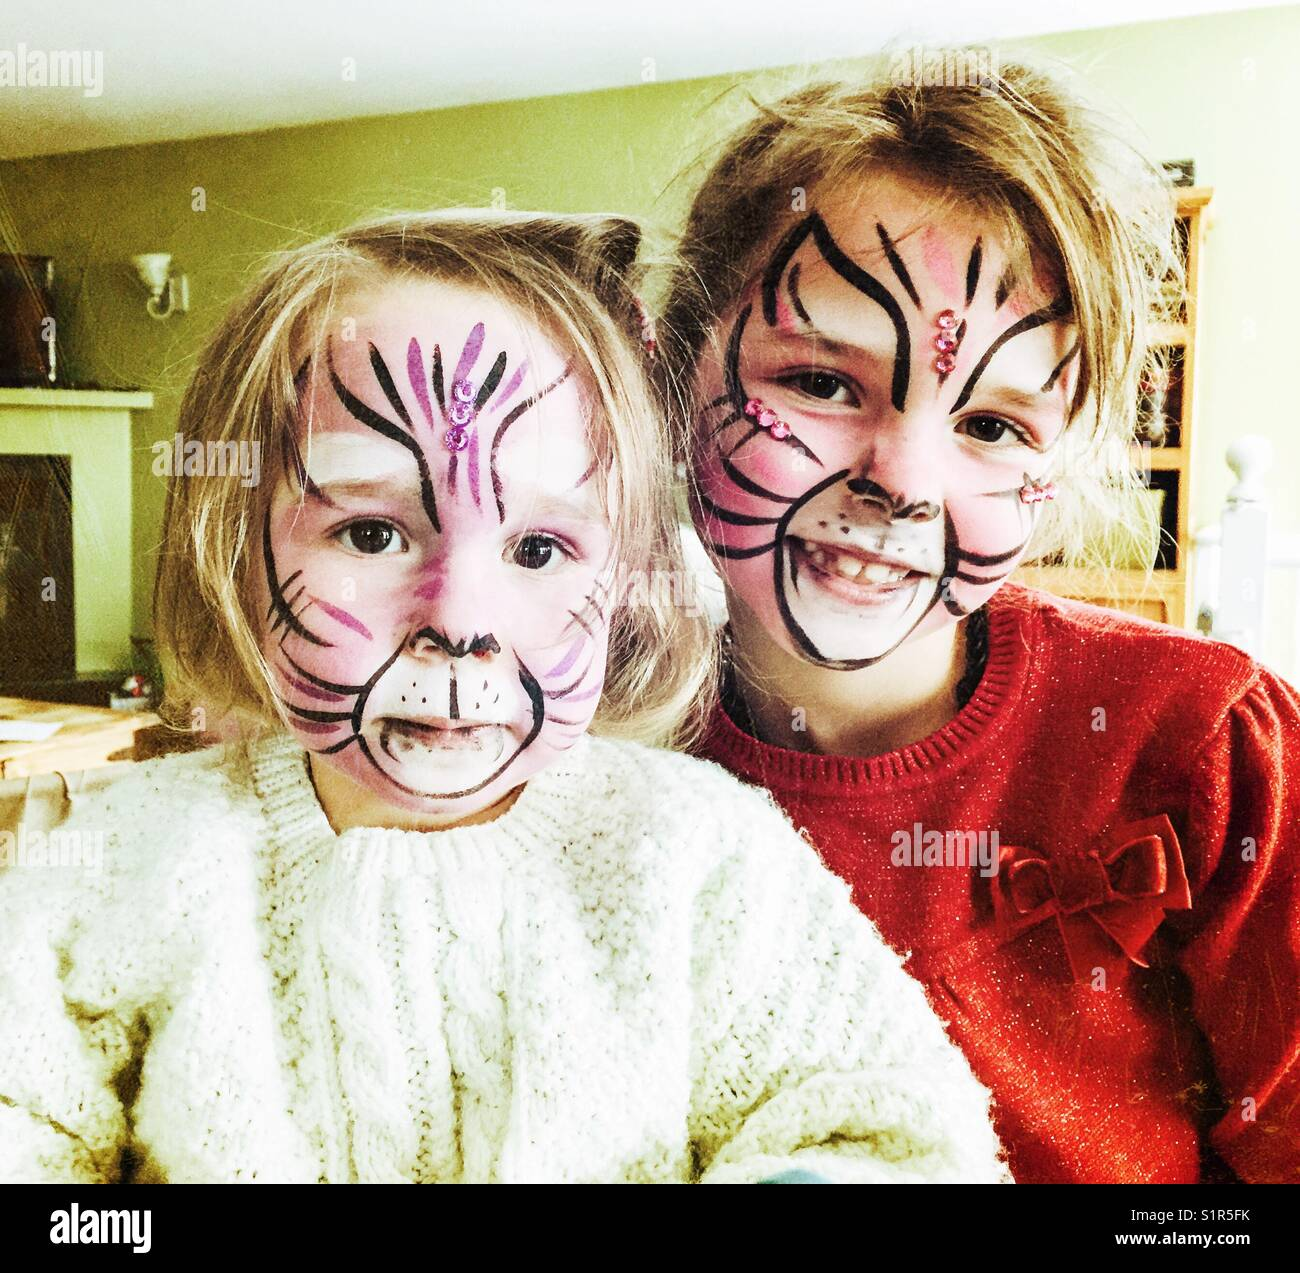 Two girls with face paint - Stock Image